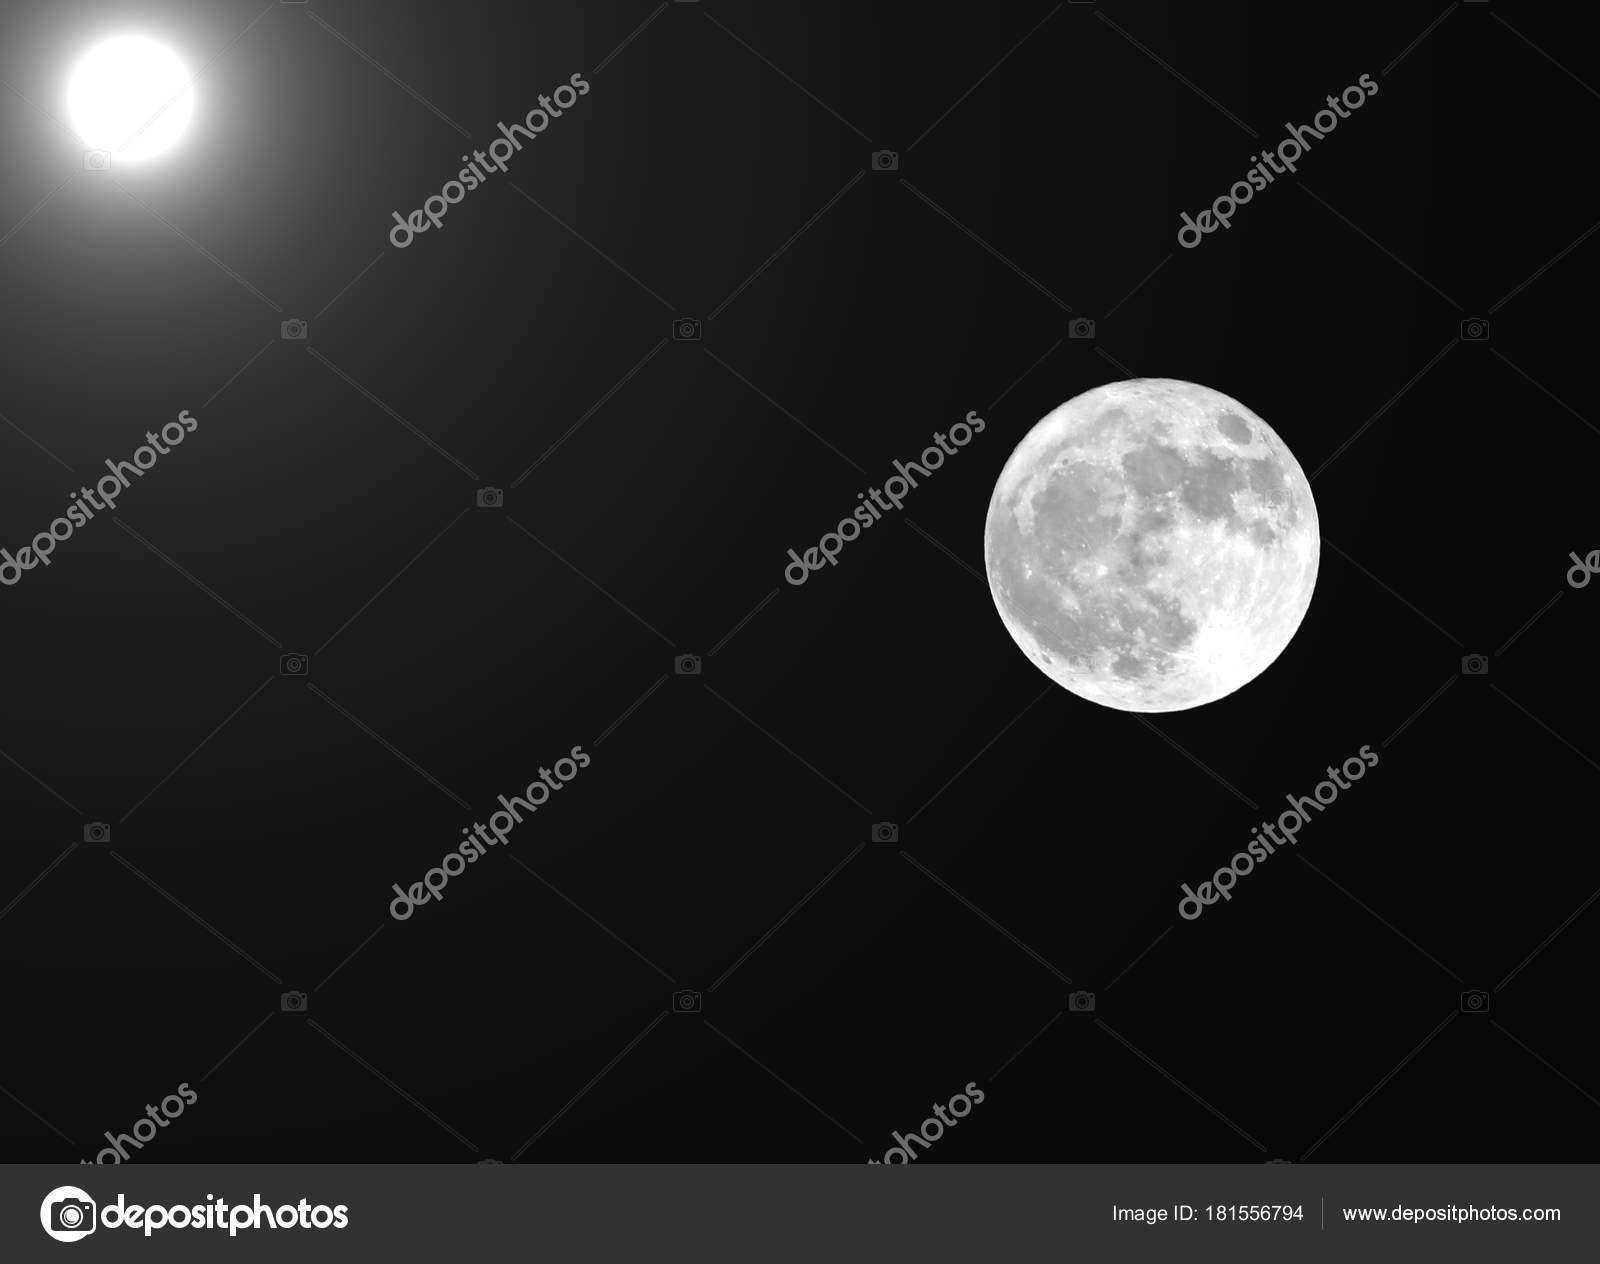 Full Moon And The Sun In The Same Frame Stock Photo Chiccododifc